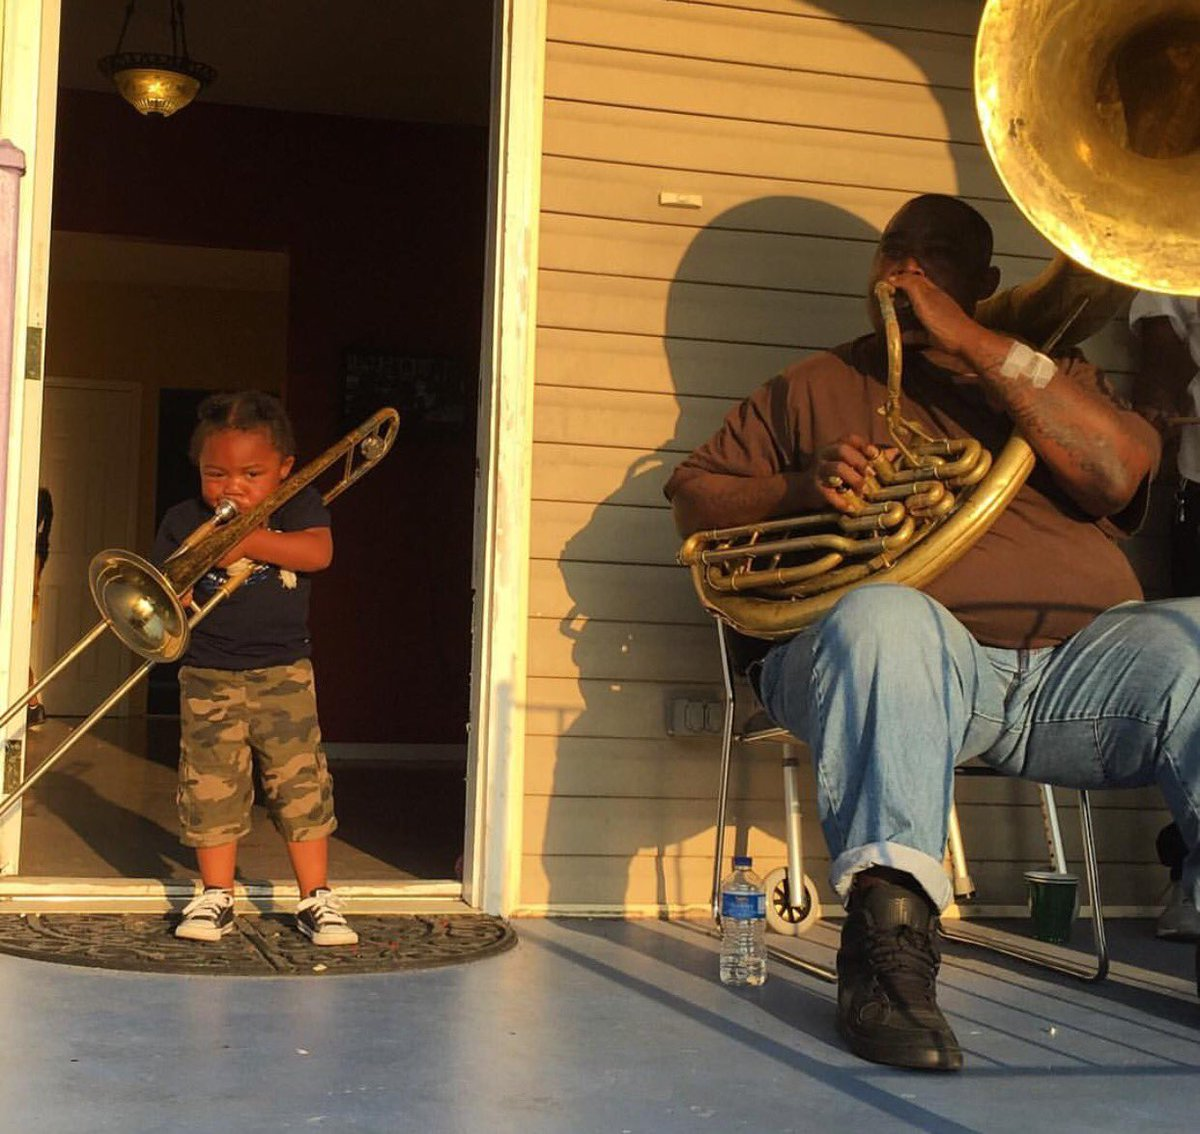 In New Orleans, lessons are not always taught in the classroom. Photo: @shabonkadonk https://t.co/5Prjl786rK